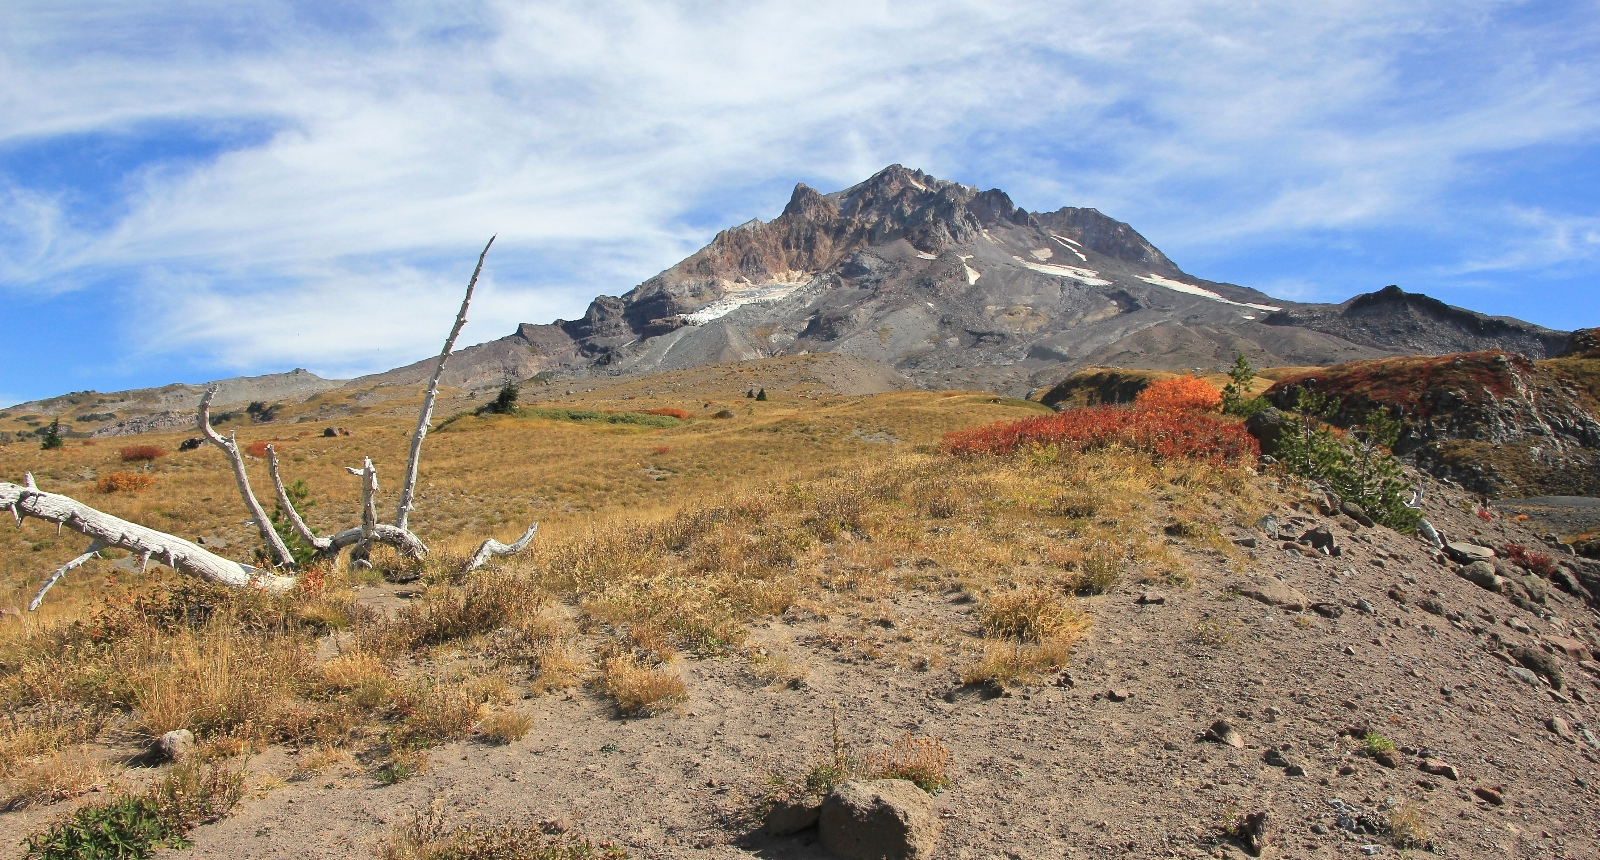 09-13-15 Mt. Hood Paradise Ridge hike (93)